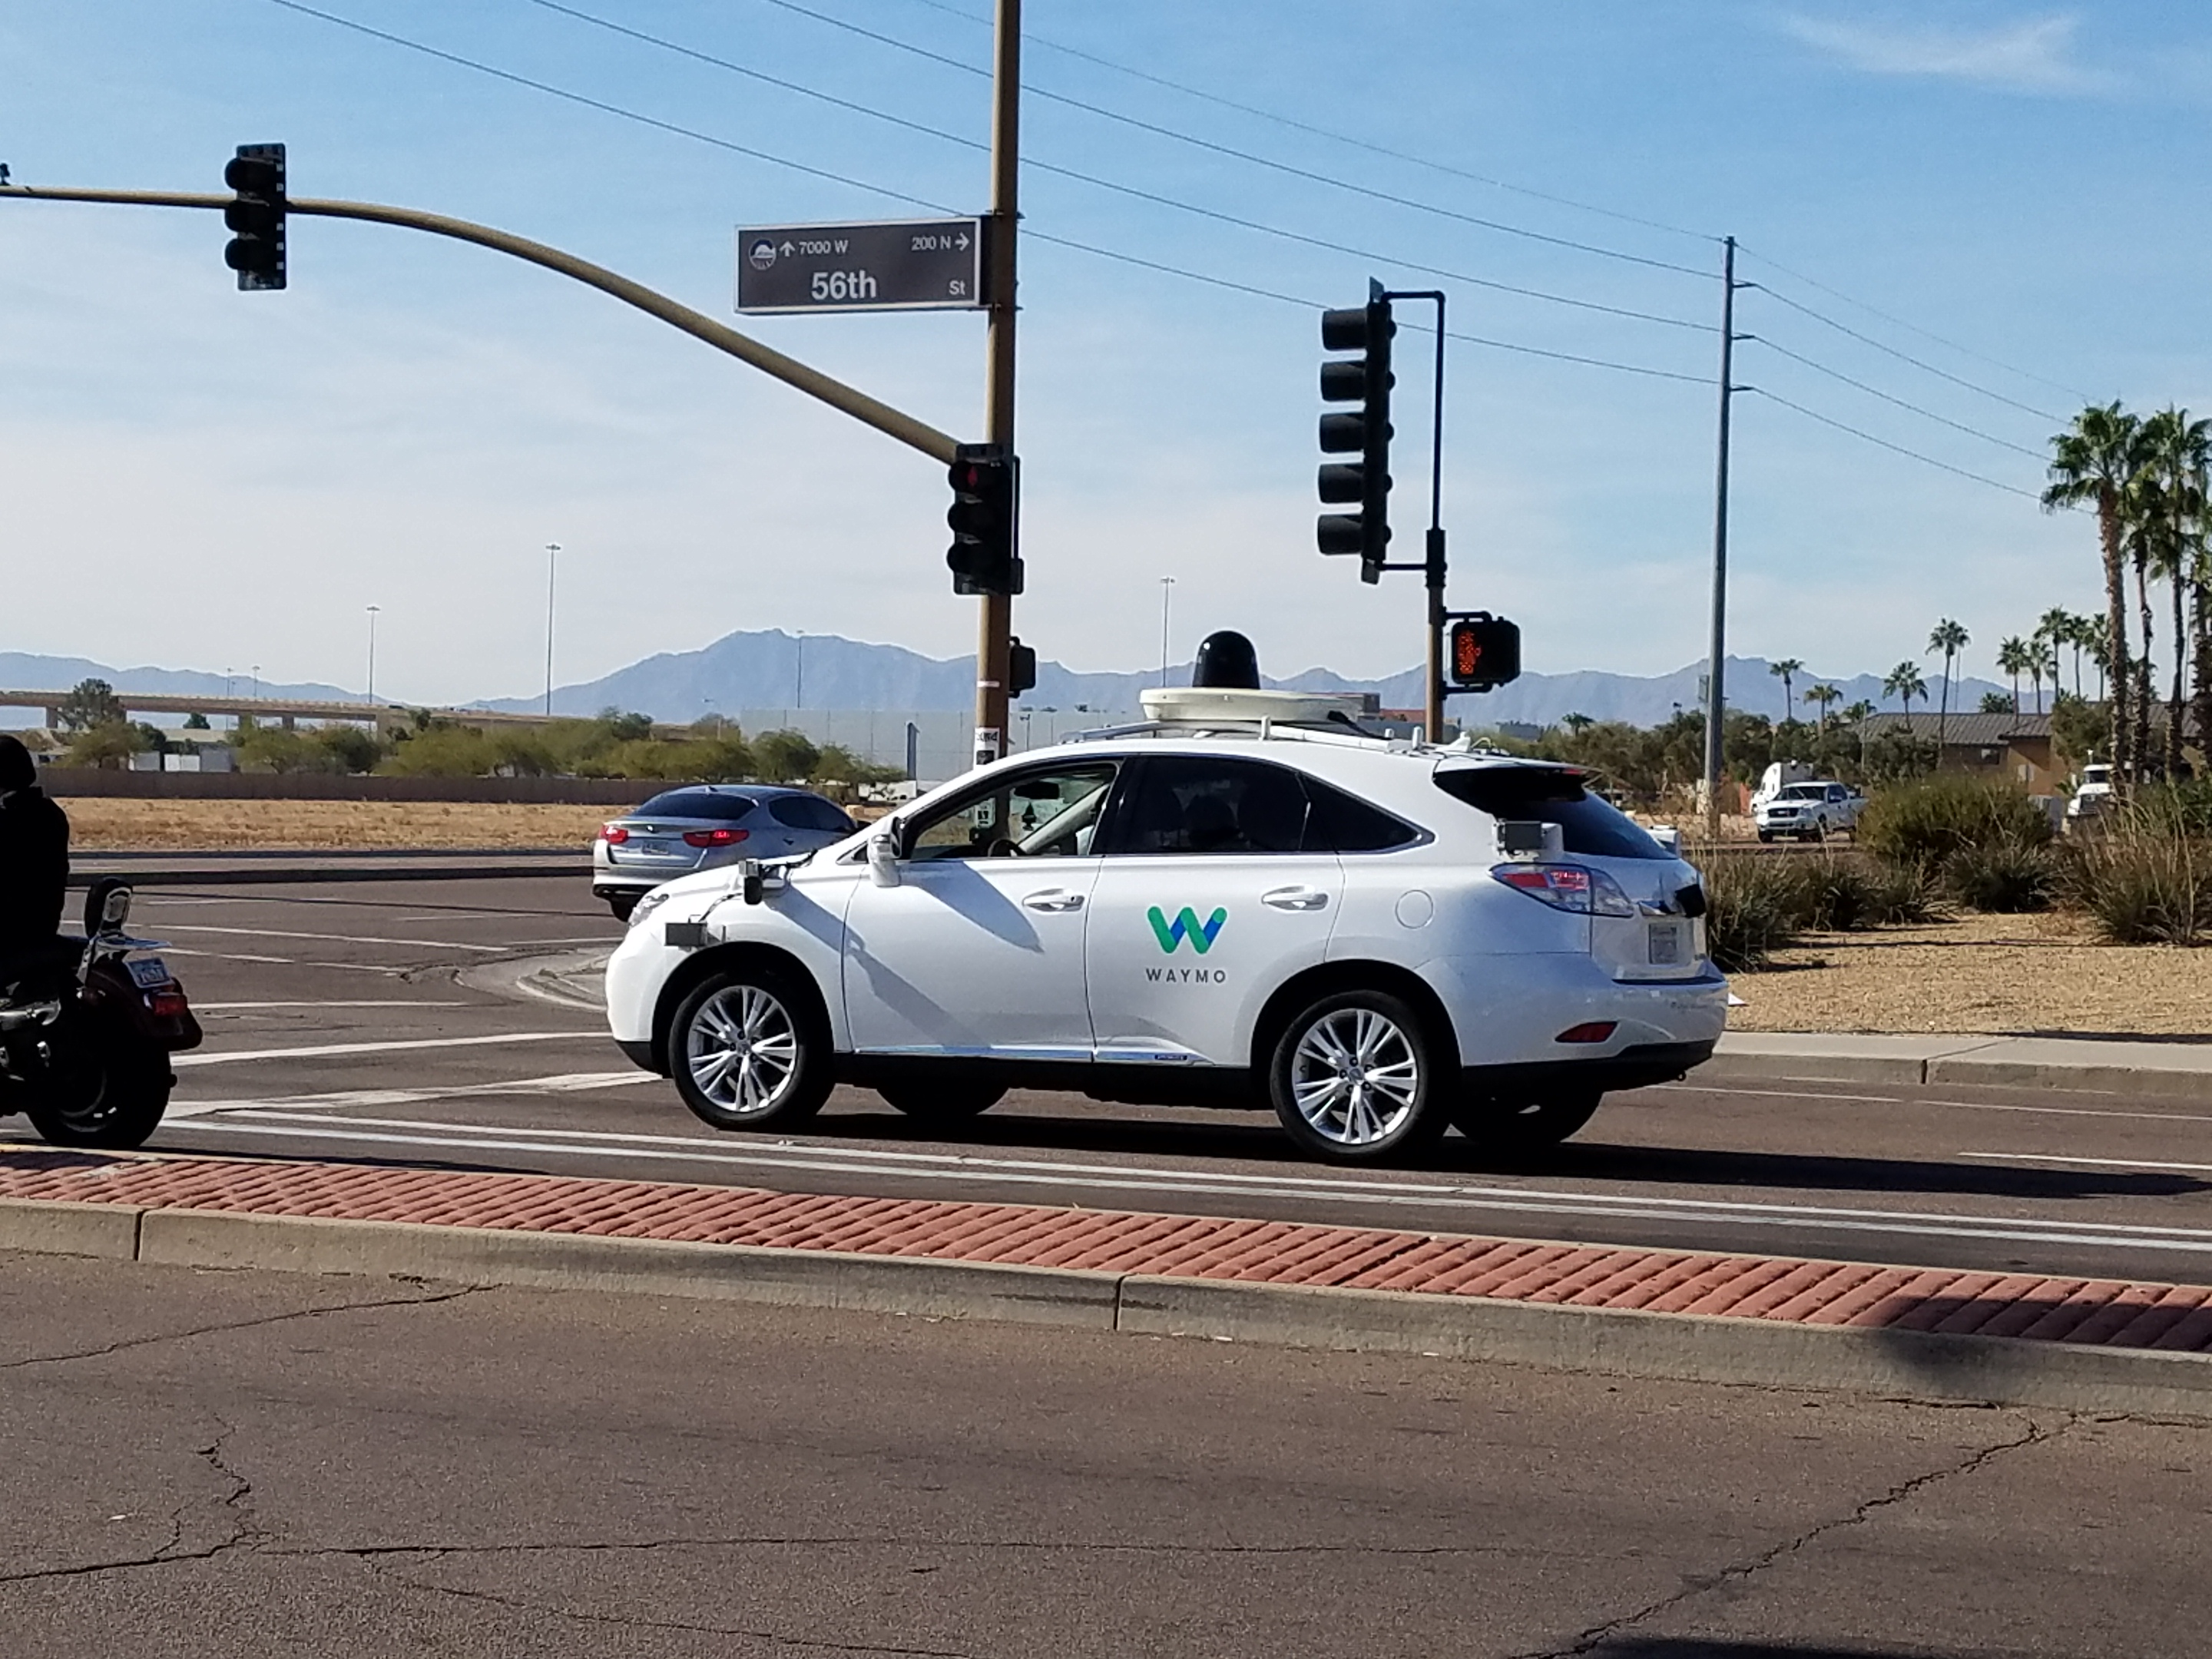 A Waymo self-driving vehicle in Chandler, Ariz.